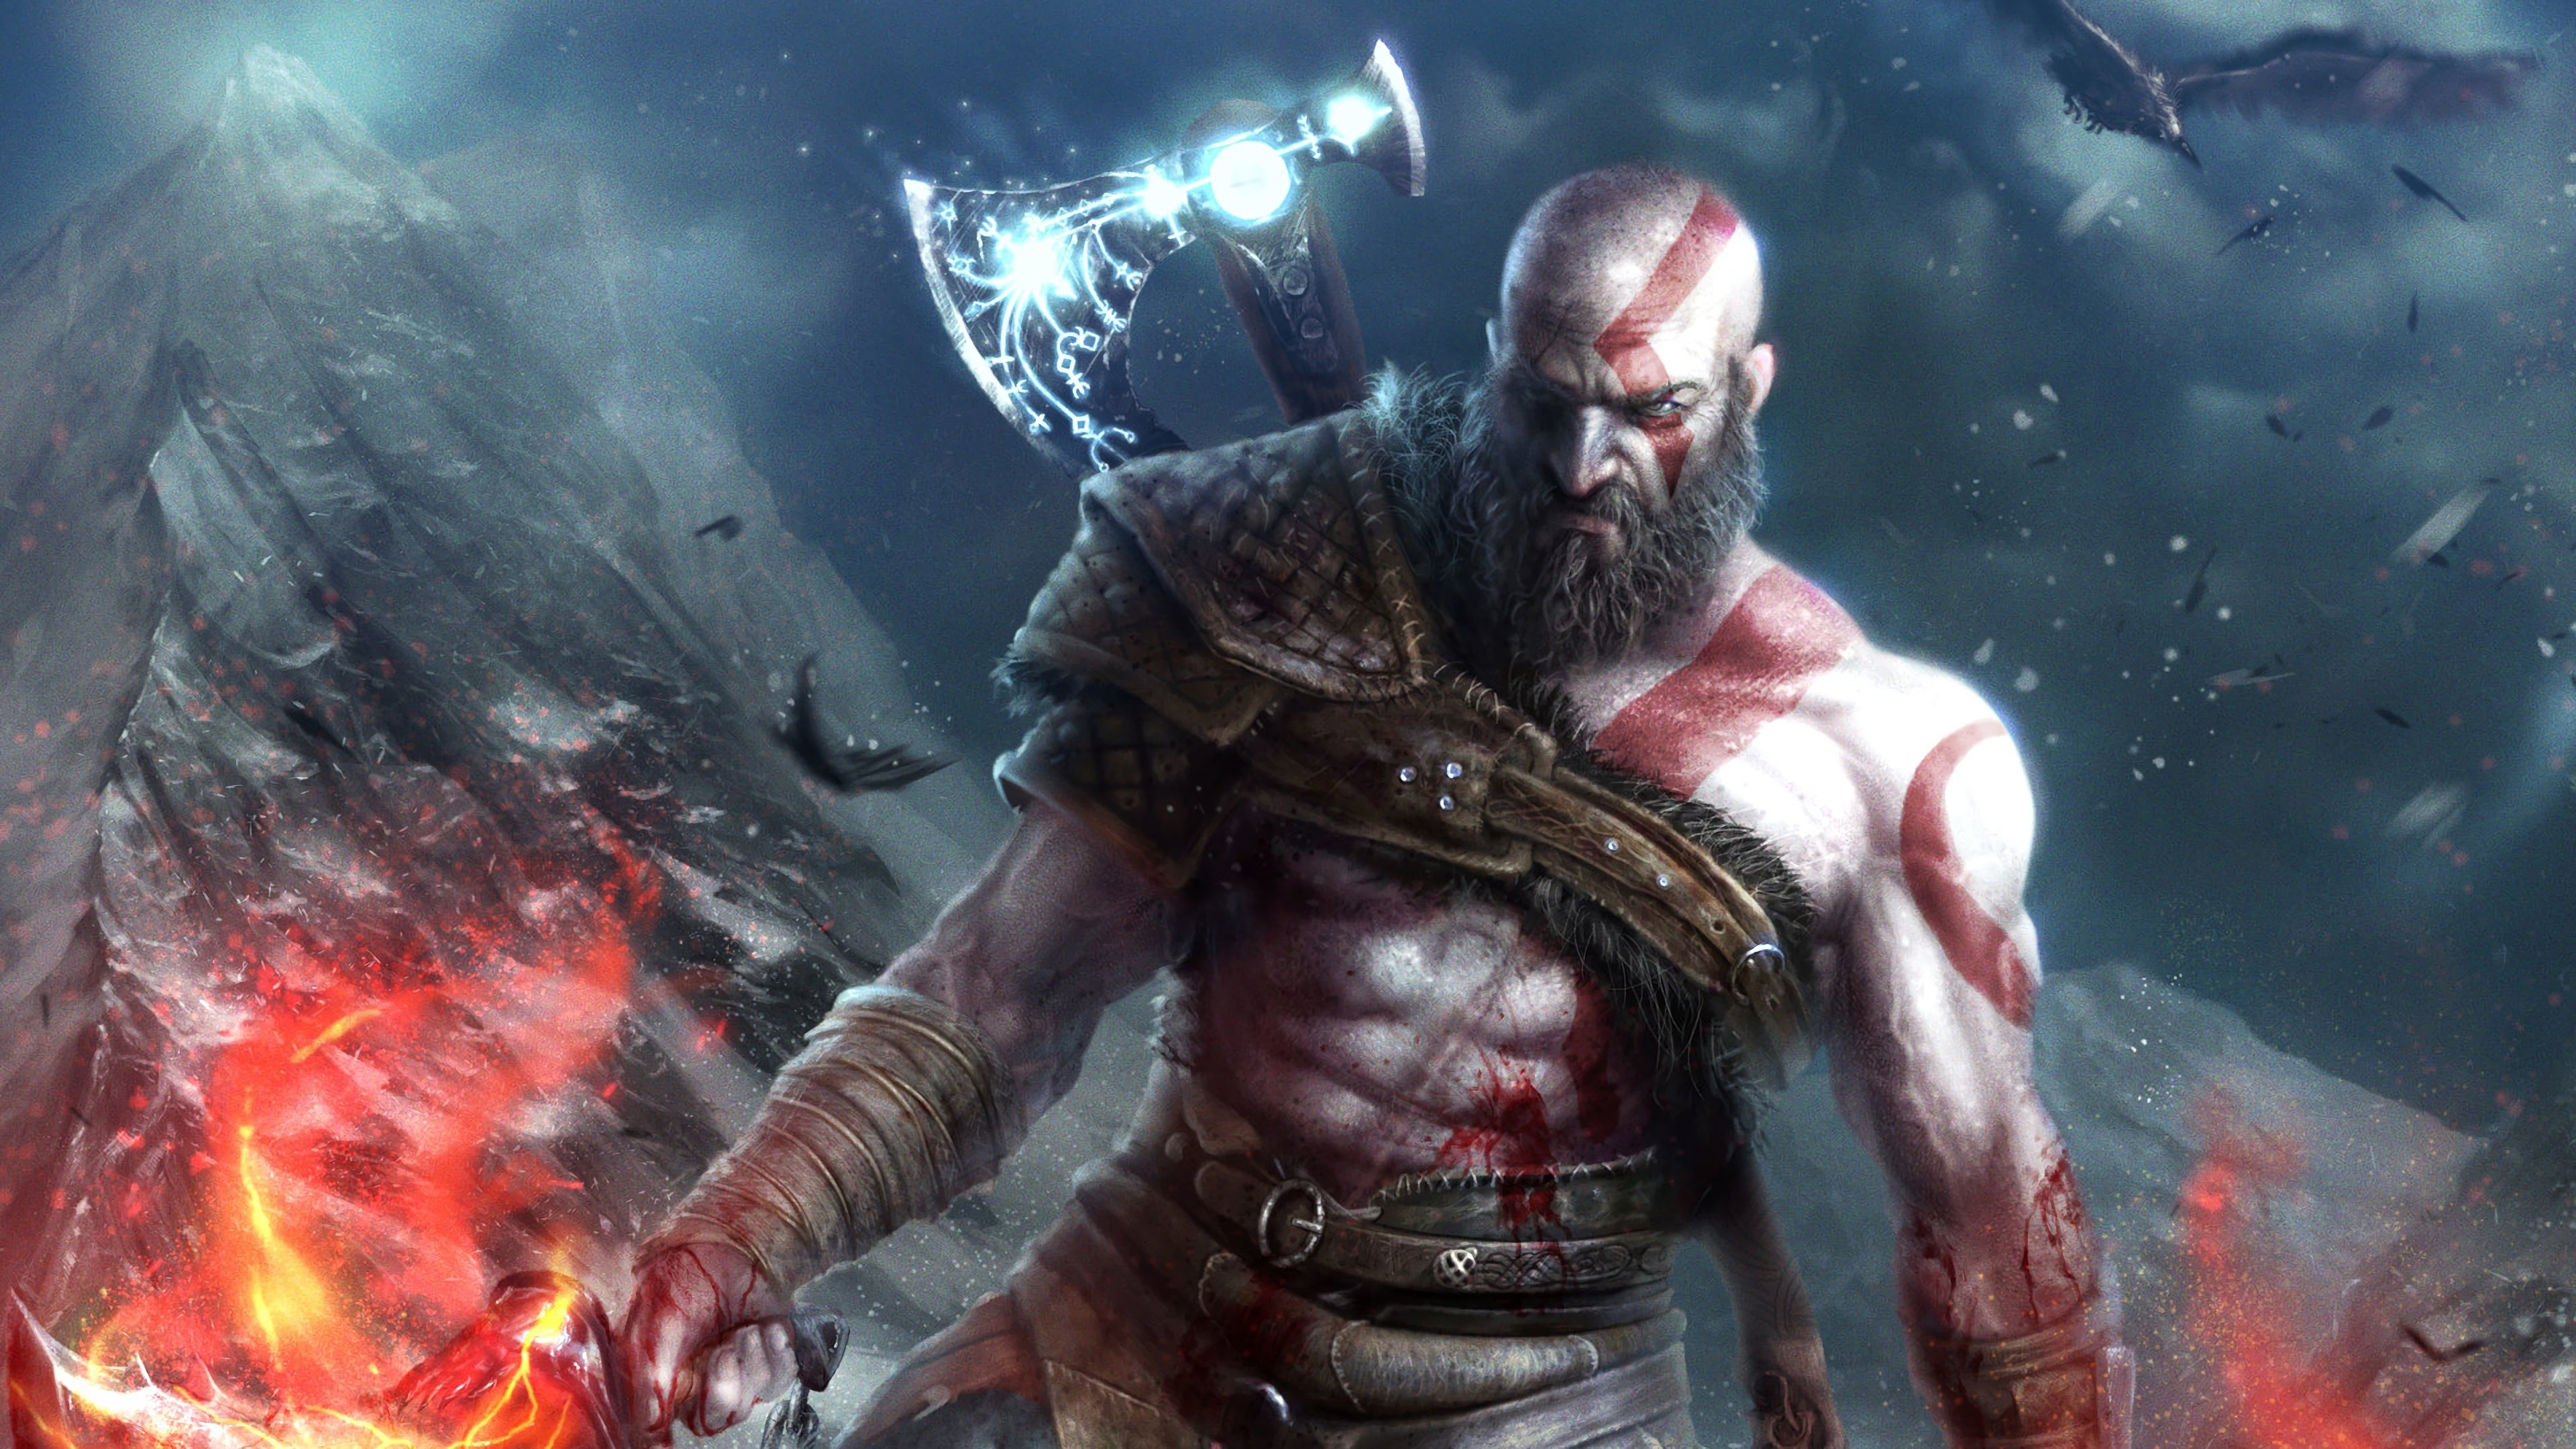 God of War Sequel Release Date, Story and Character Details will be Revealed with Sony PS5 Launch